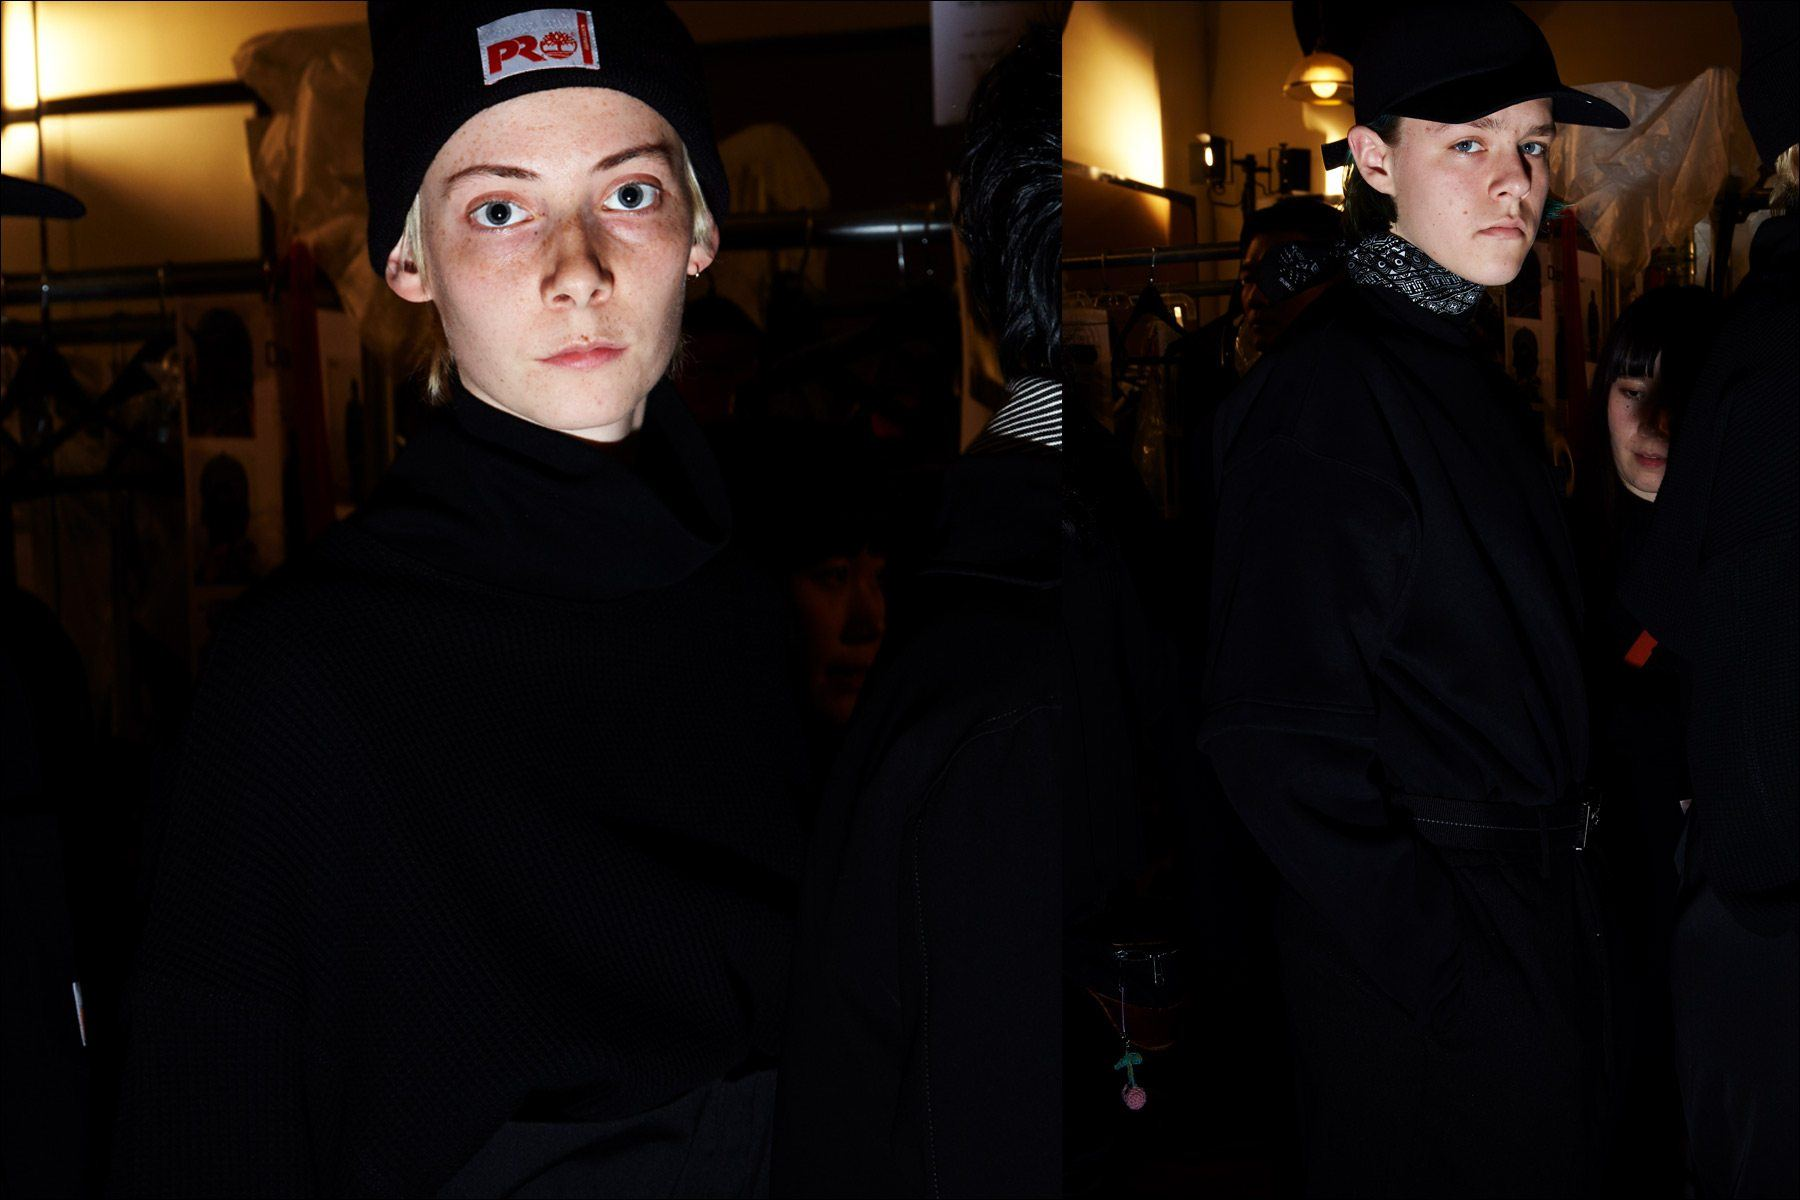 Models snapped backstage at N. Hoolywood for Fall 2018. Photography by Alexander Thompson for Ponyboy magazine.